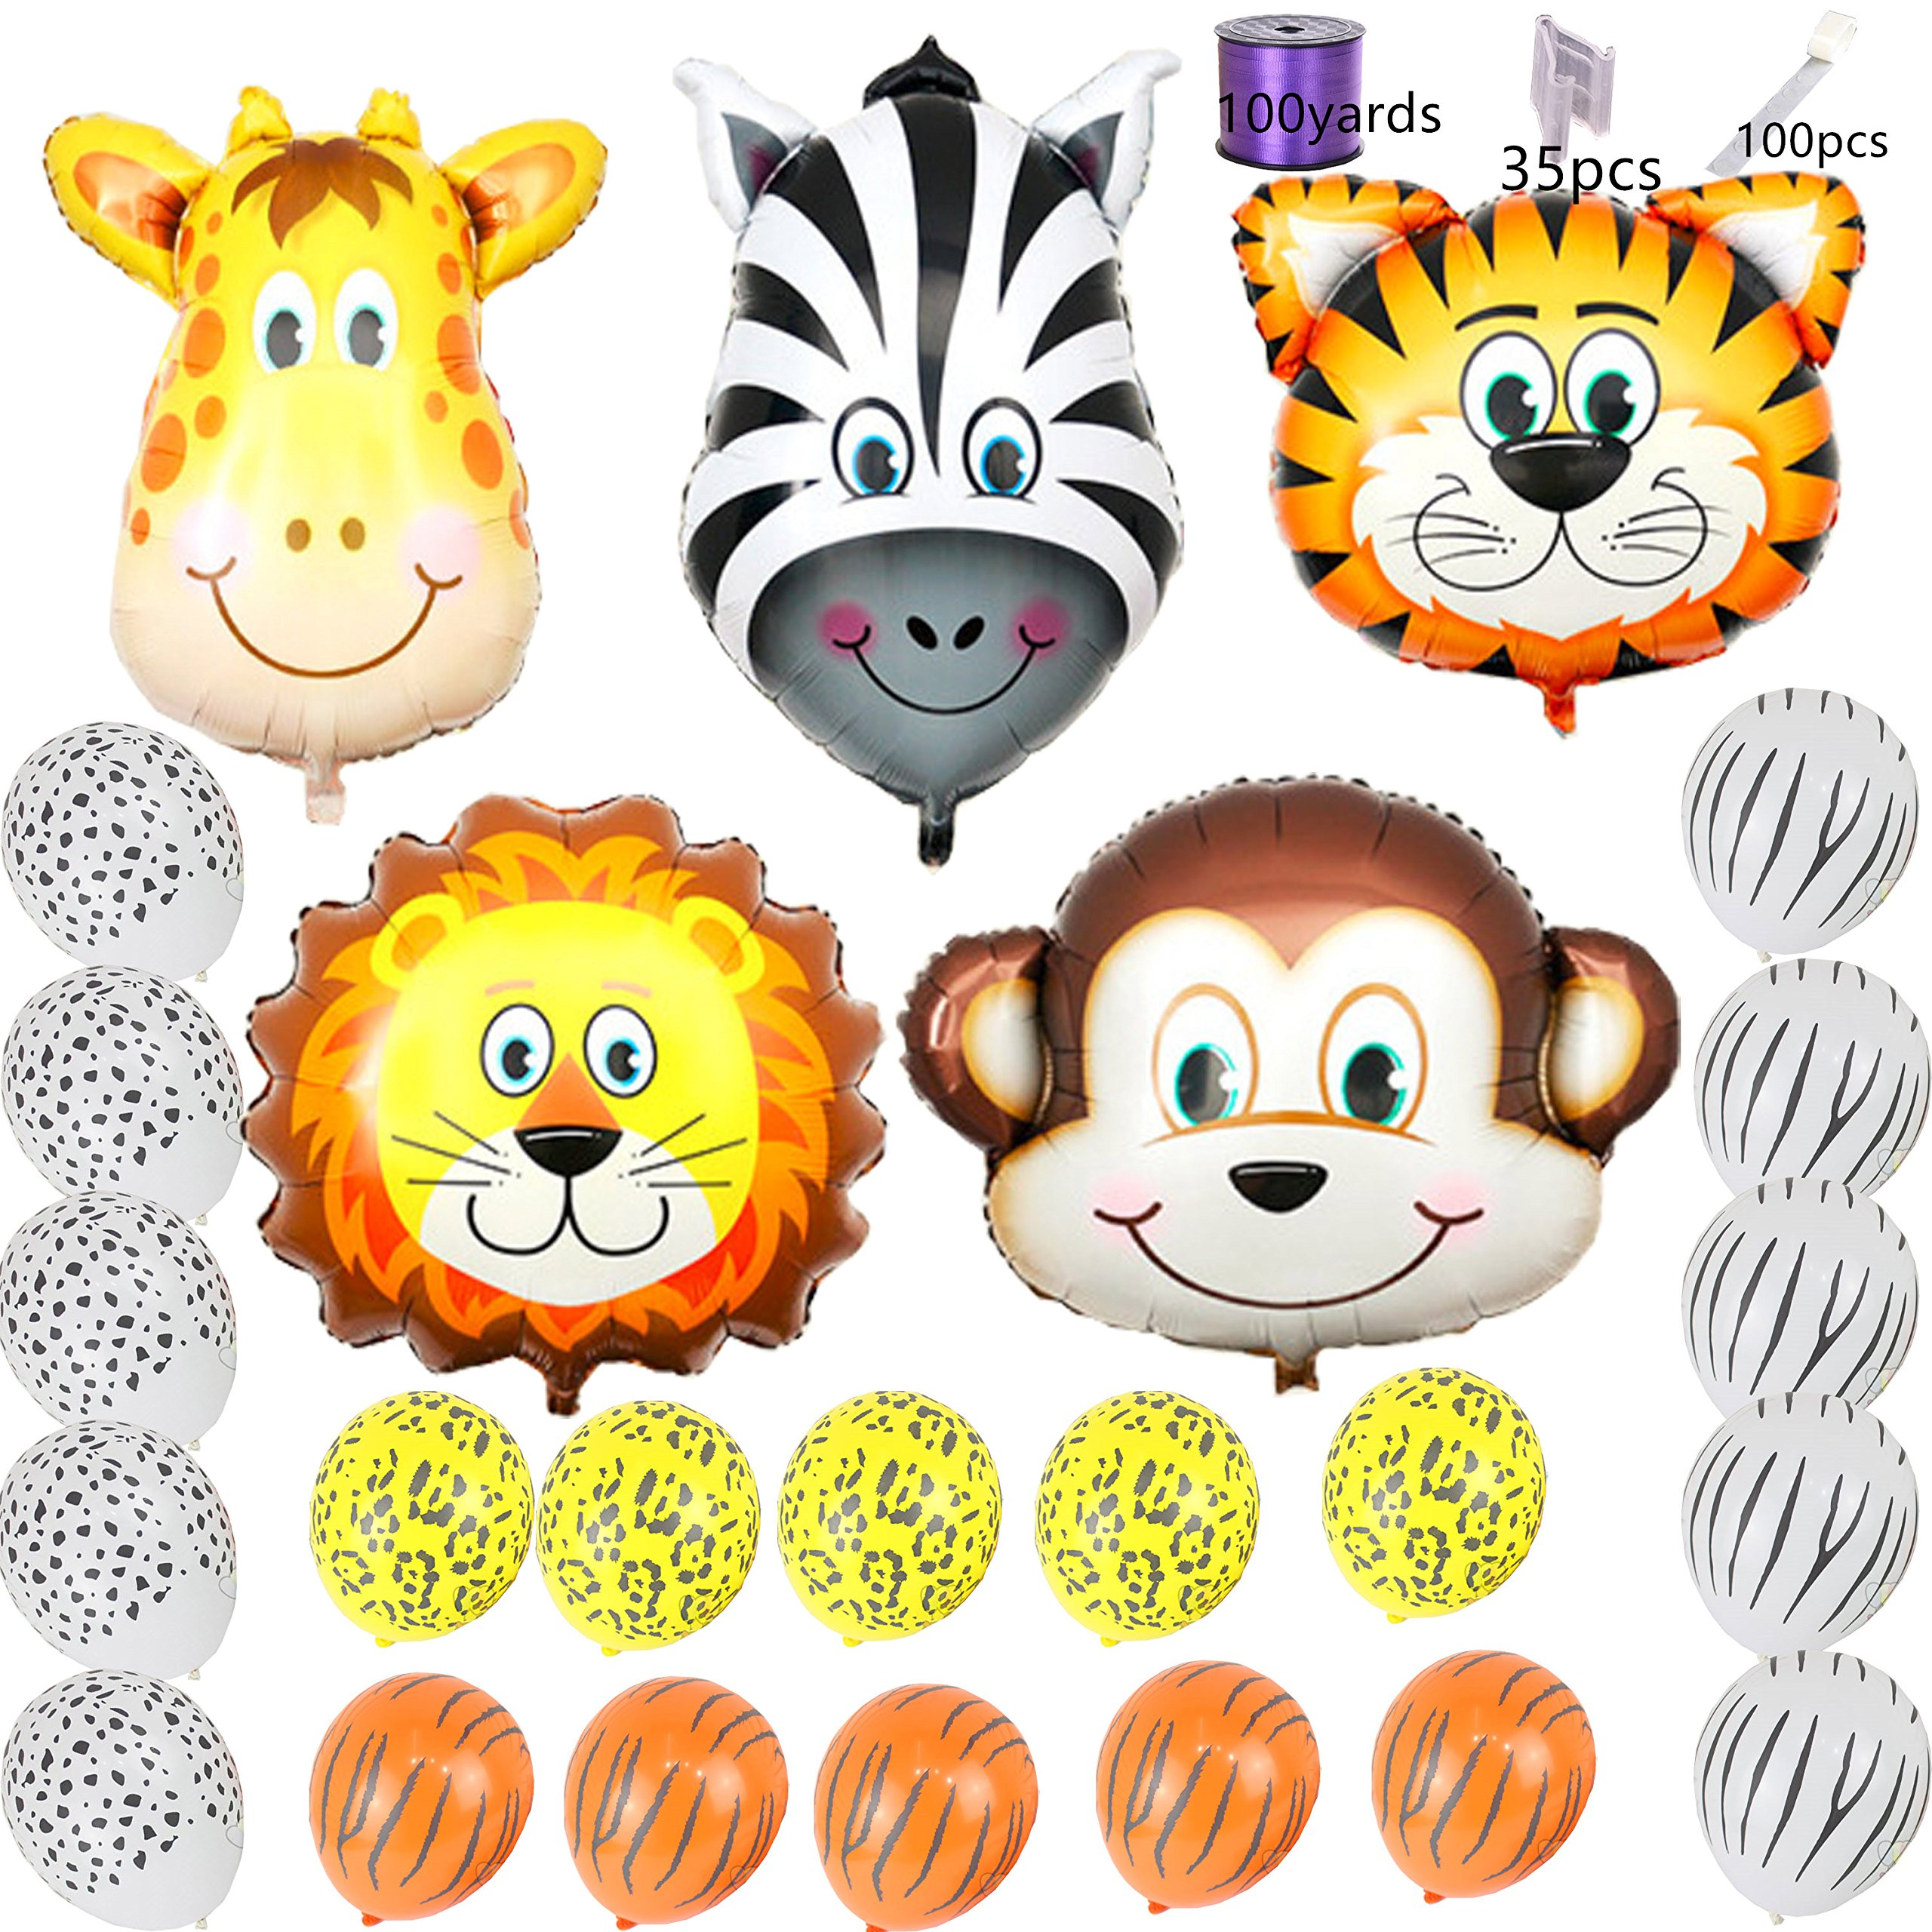 Safari Jungle Zoo Huge Animal head Balloon Jumbo Balloons Zebra, Tiger, Lions, Giraffe & Monkey with 20pcs 11'' latex Safari Print Party Supply foci cozi by foci cozi (Image #1)